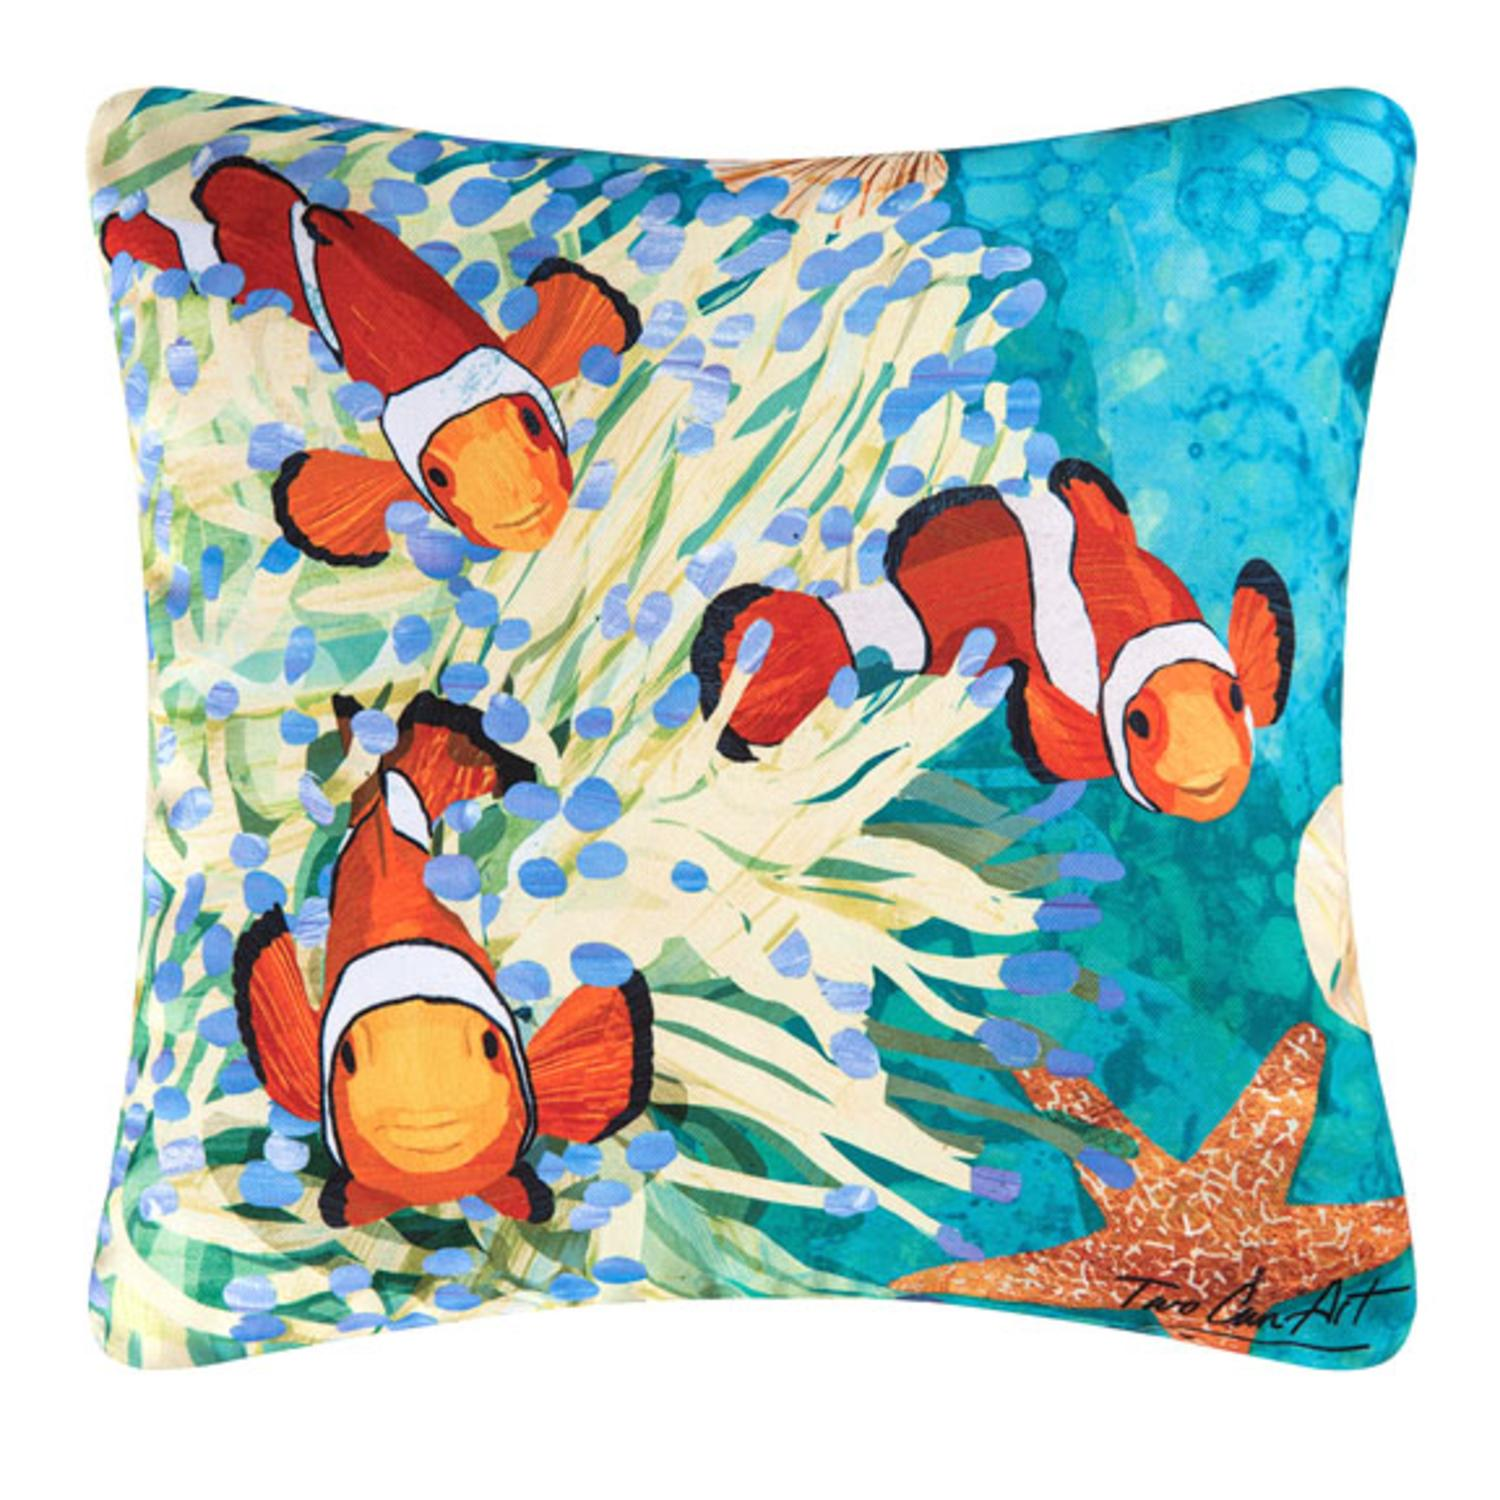 18 Tropical Coral Reef And Star Fish Square Outdoor Throw Pillow